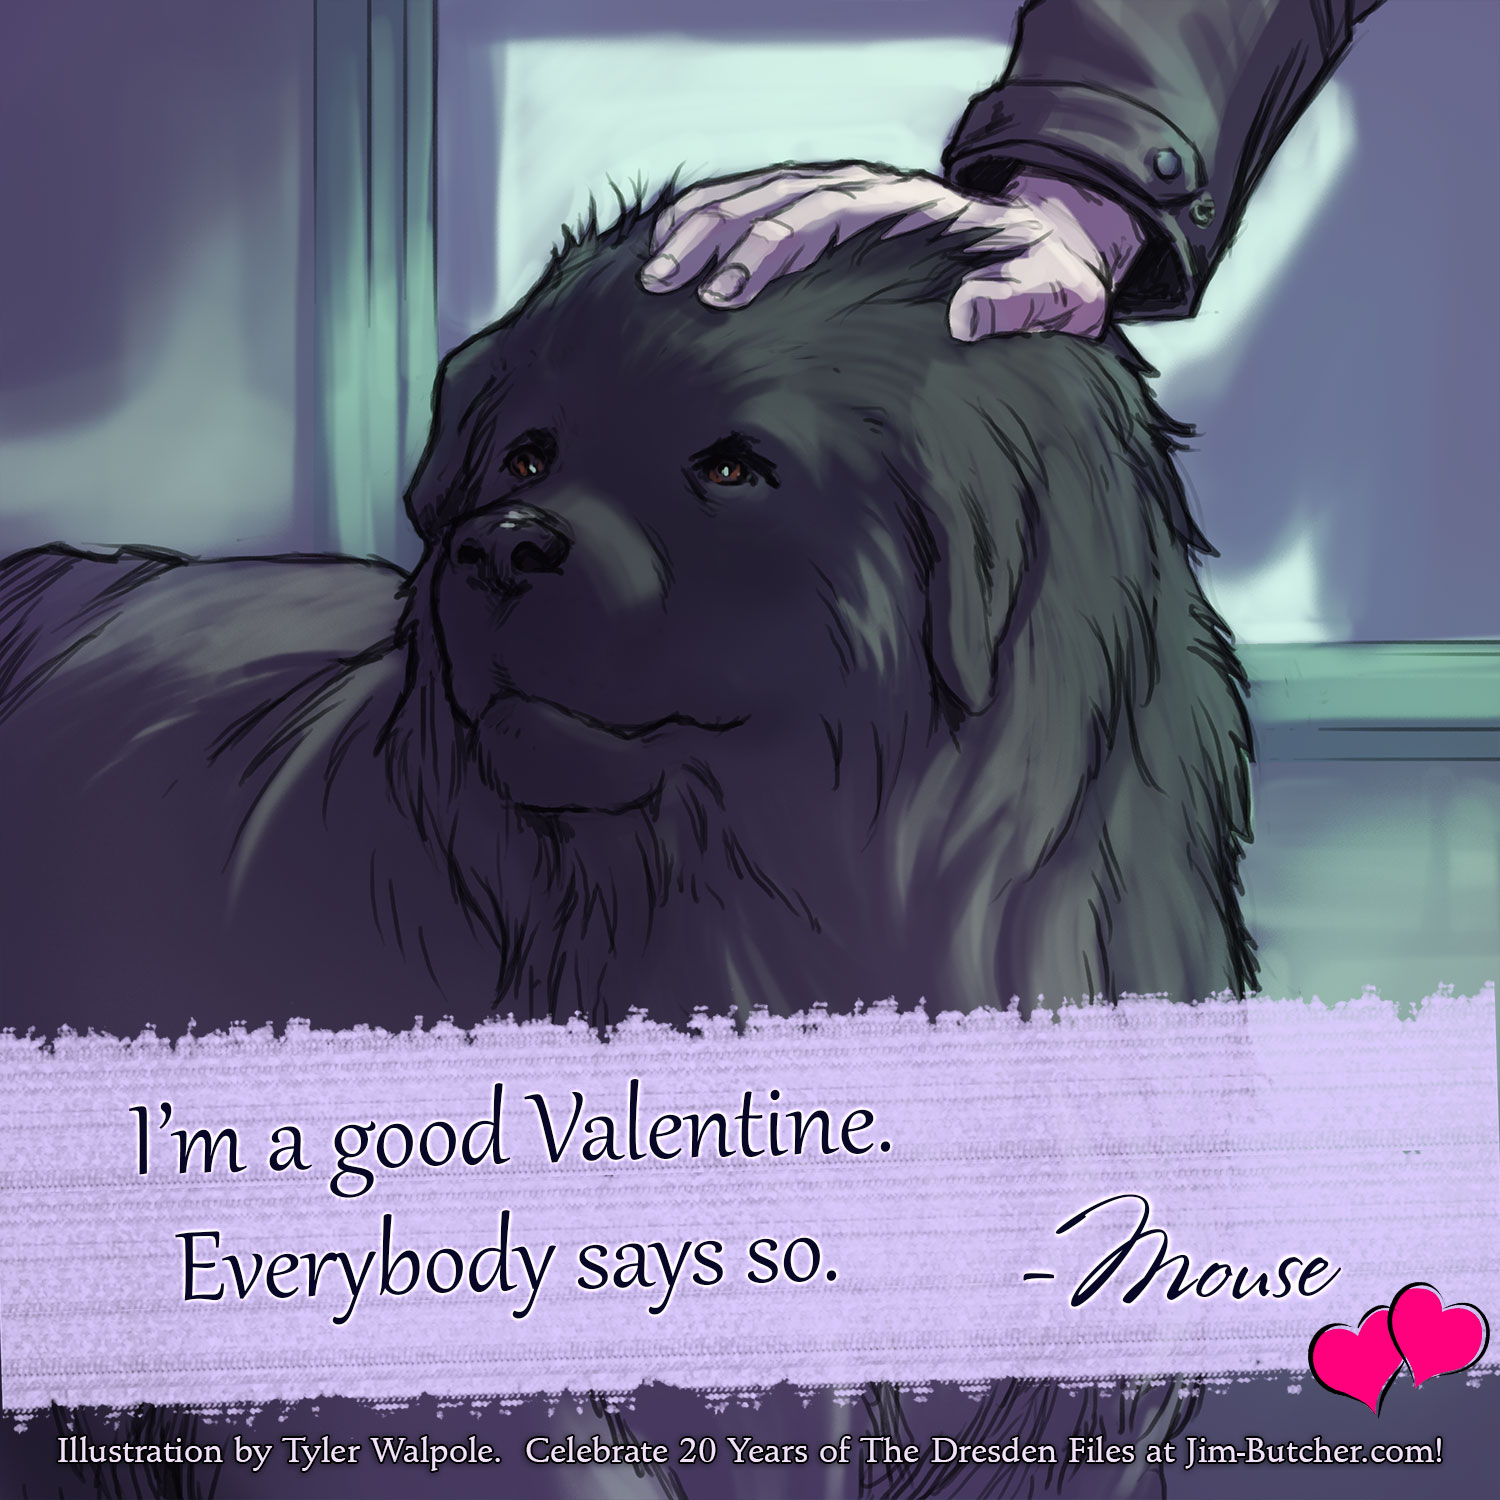 Mouse: I'm a good Valentine. Everybody says so.